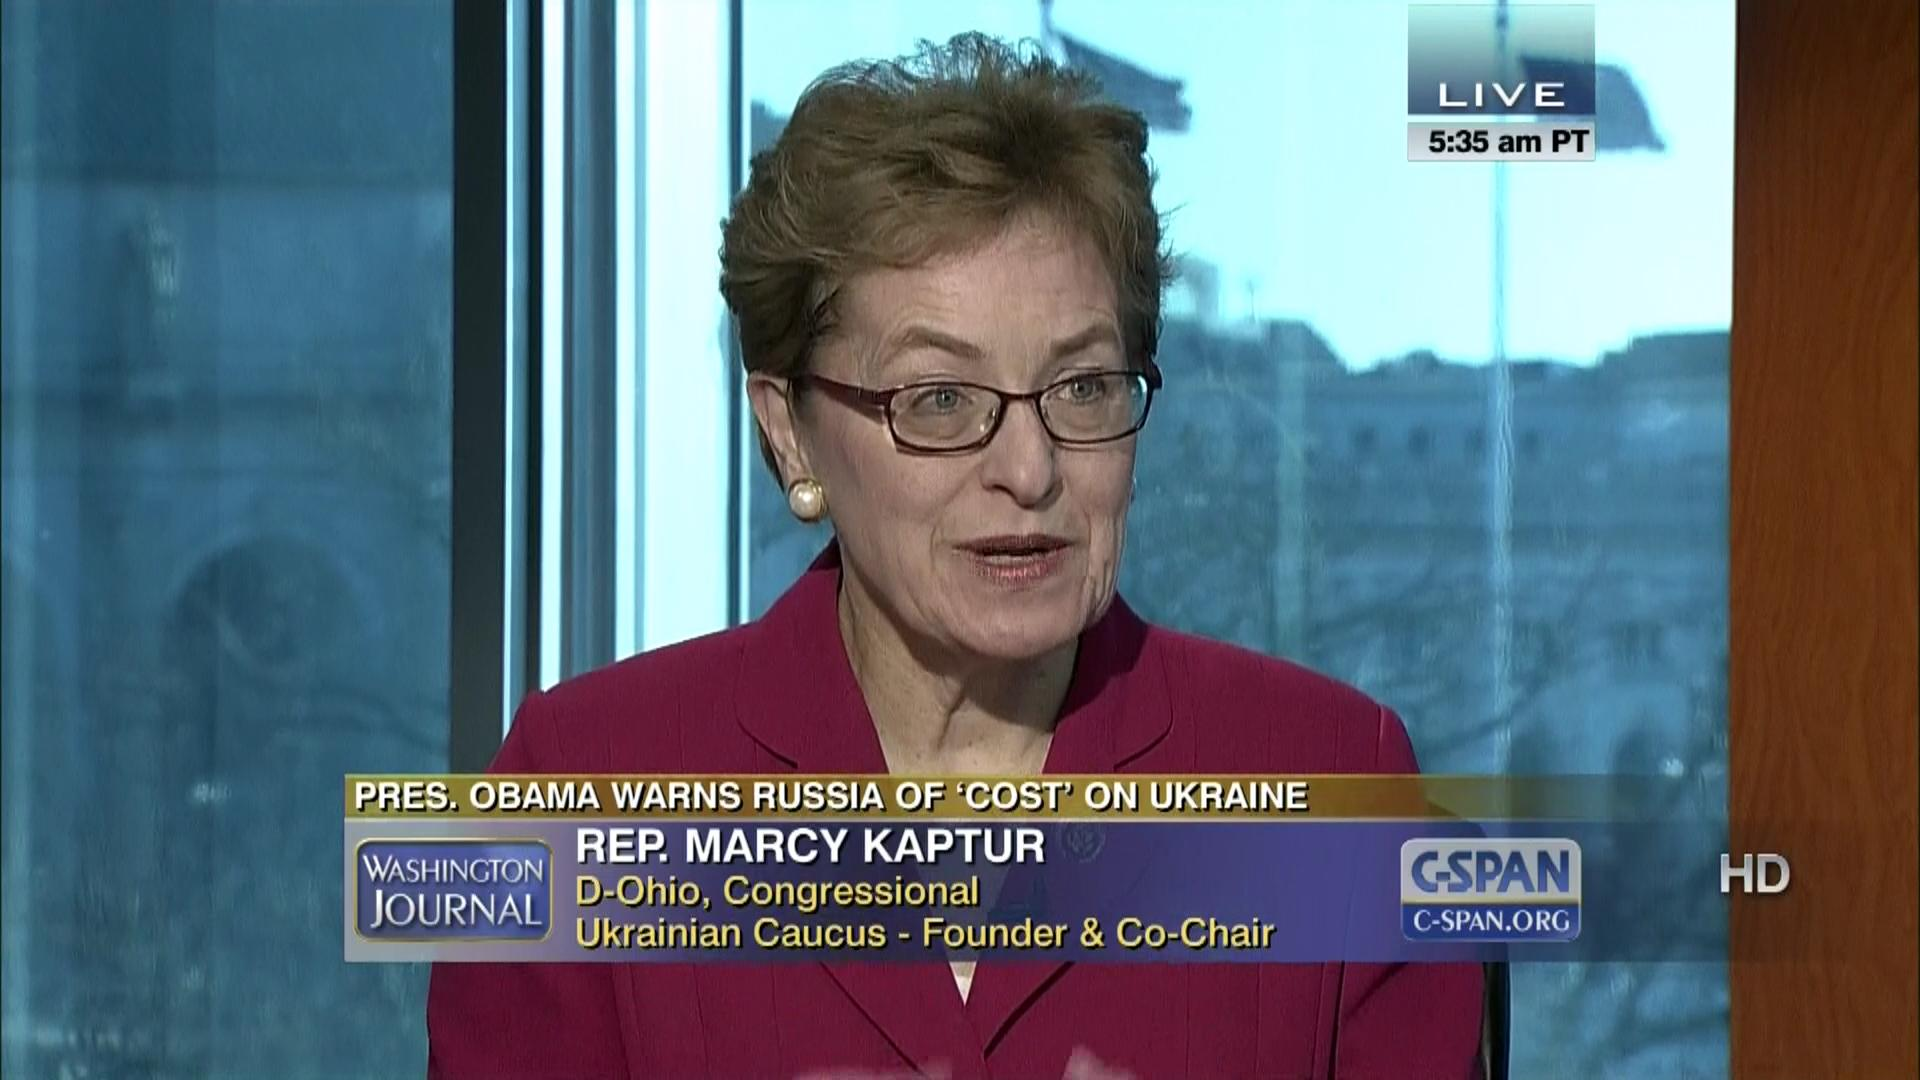 Washington Journal Latest Developments Ukraine, Mar 13 2014 | Video |  C-SPAN.org